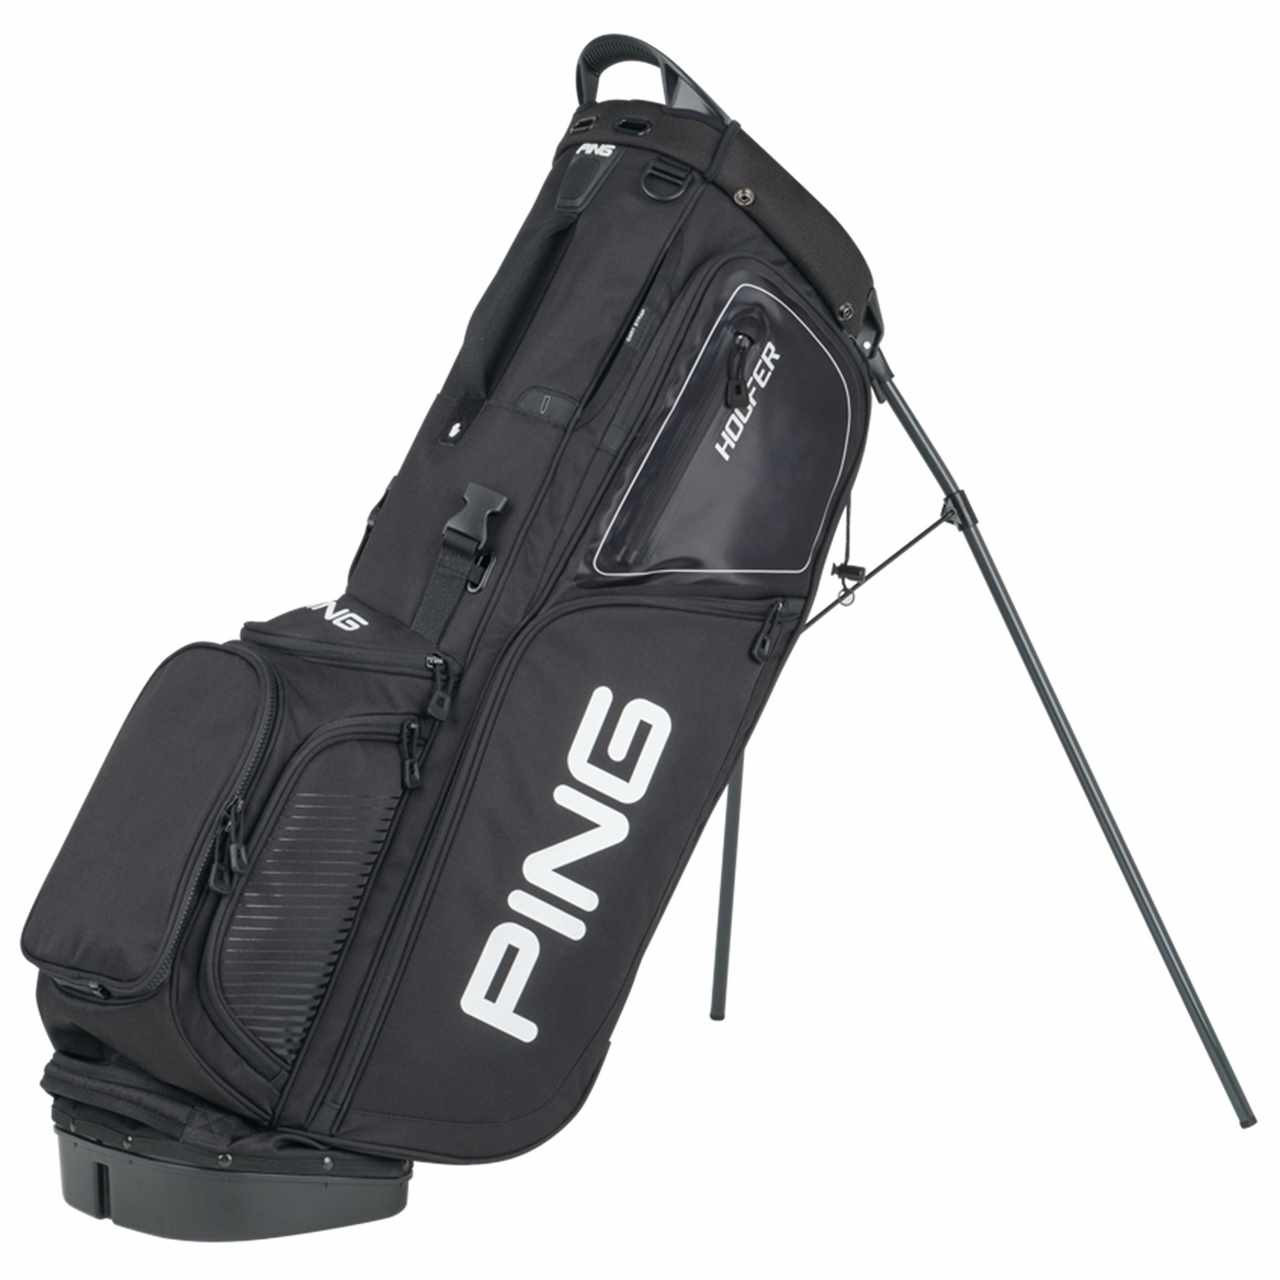 Ping Golf Bag Travel Covers